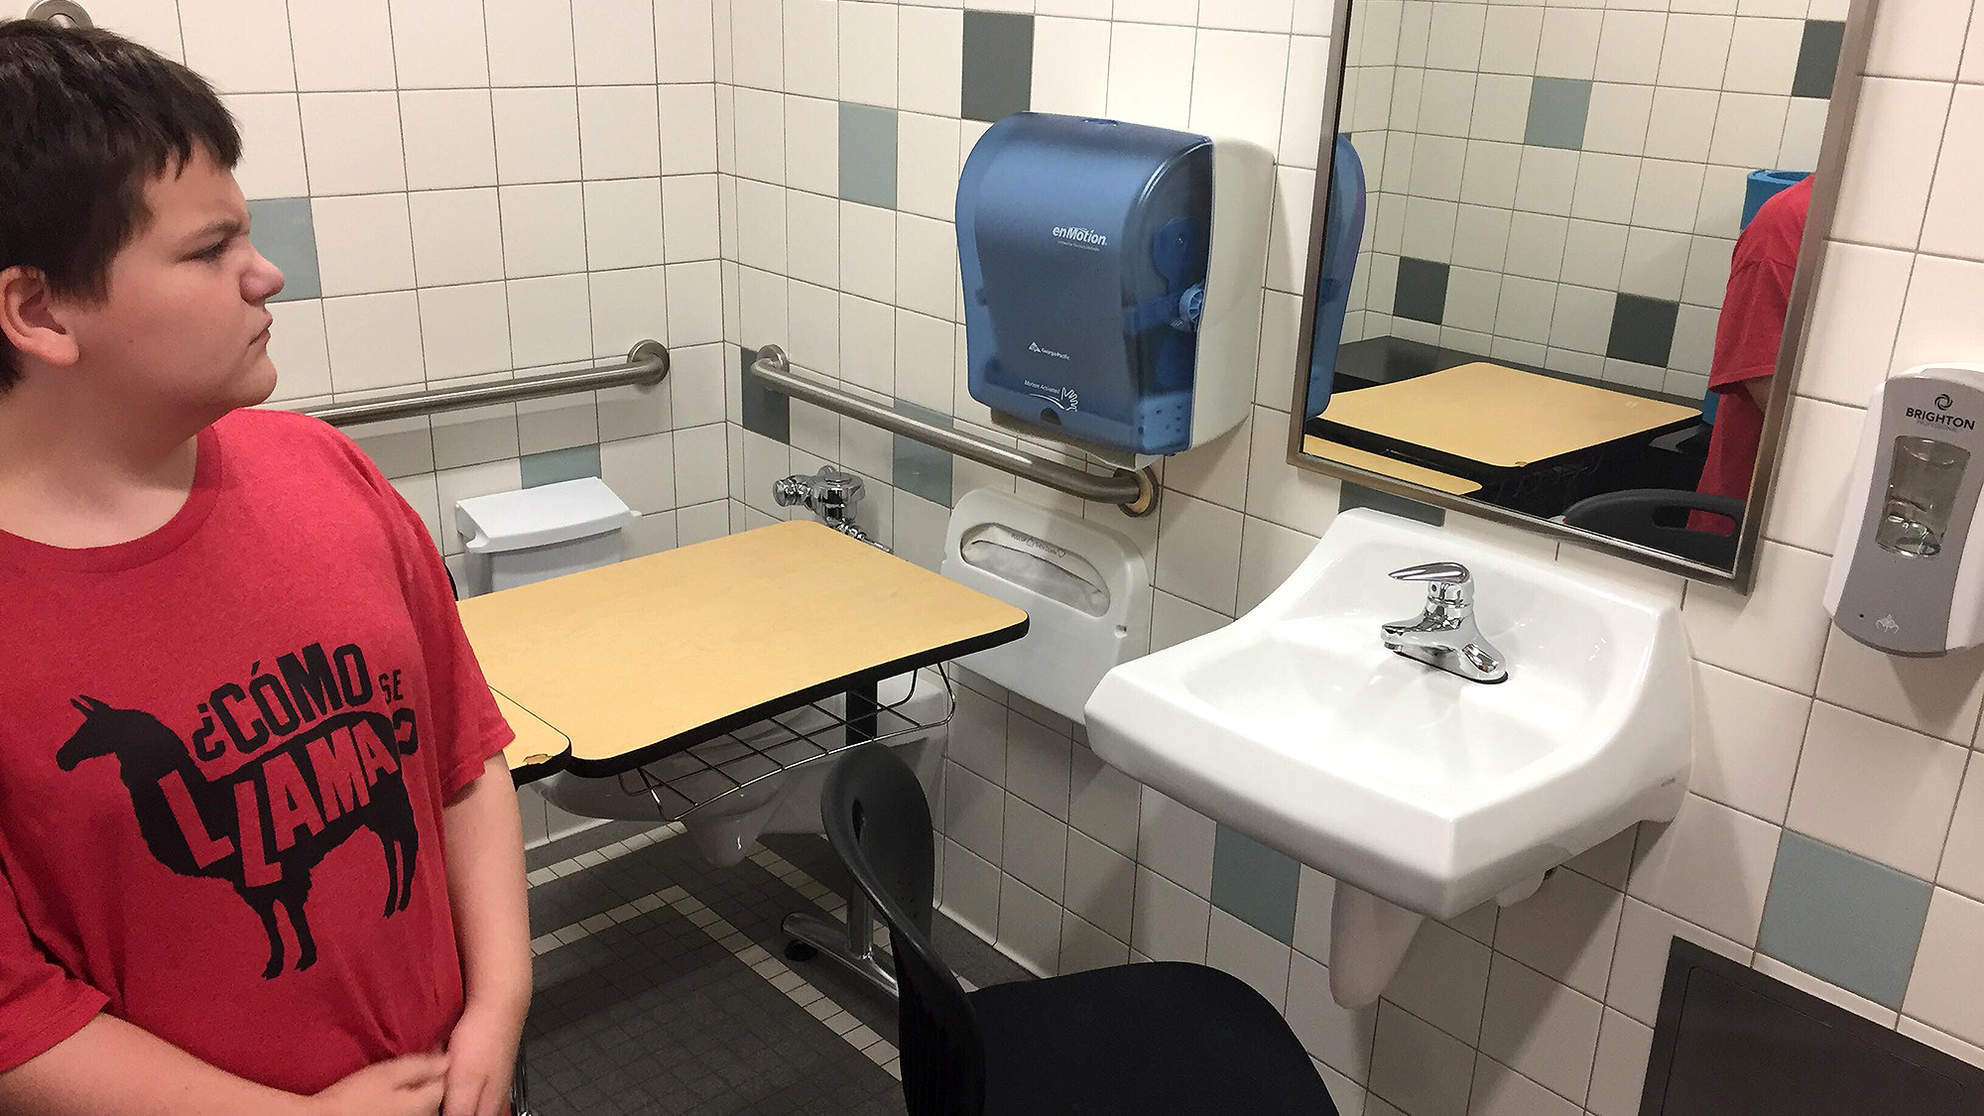 School puts desk of student with special needs in bathroom